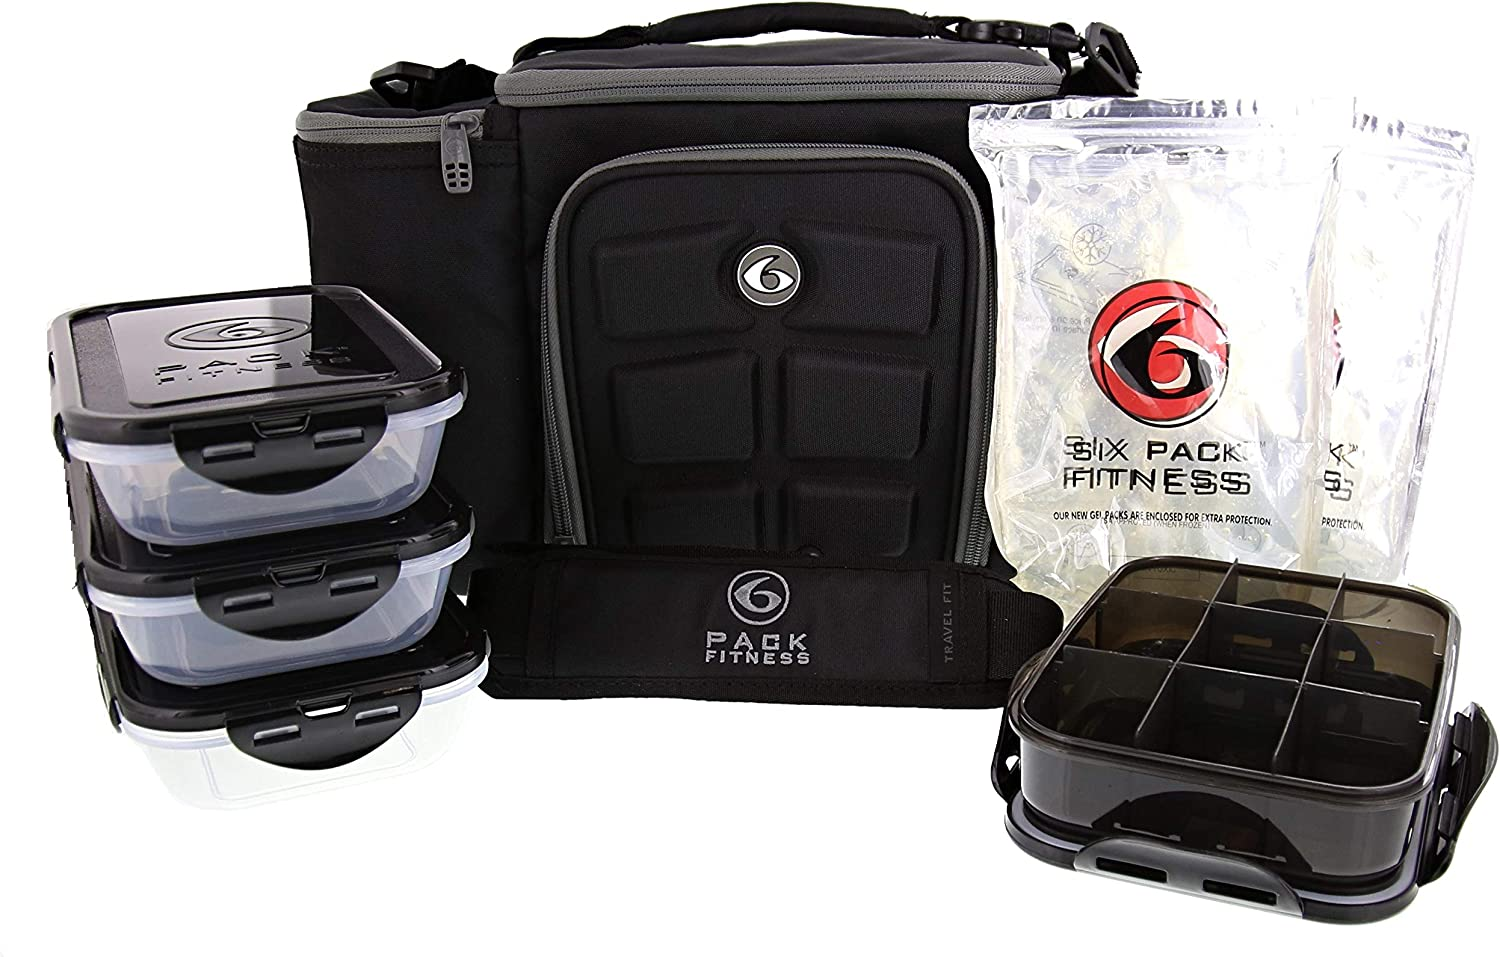 Fitness Innovator 300 Stealth Black by 6 Pack Fitness: Amazon.es ...